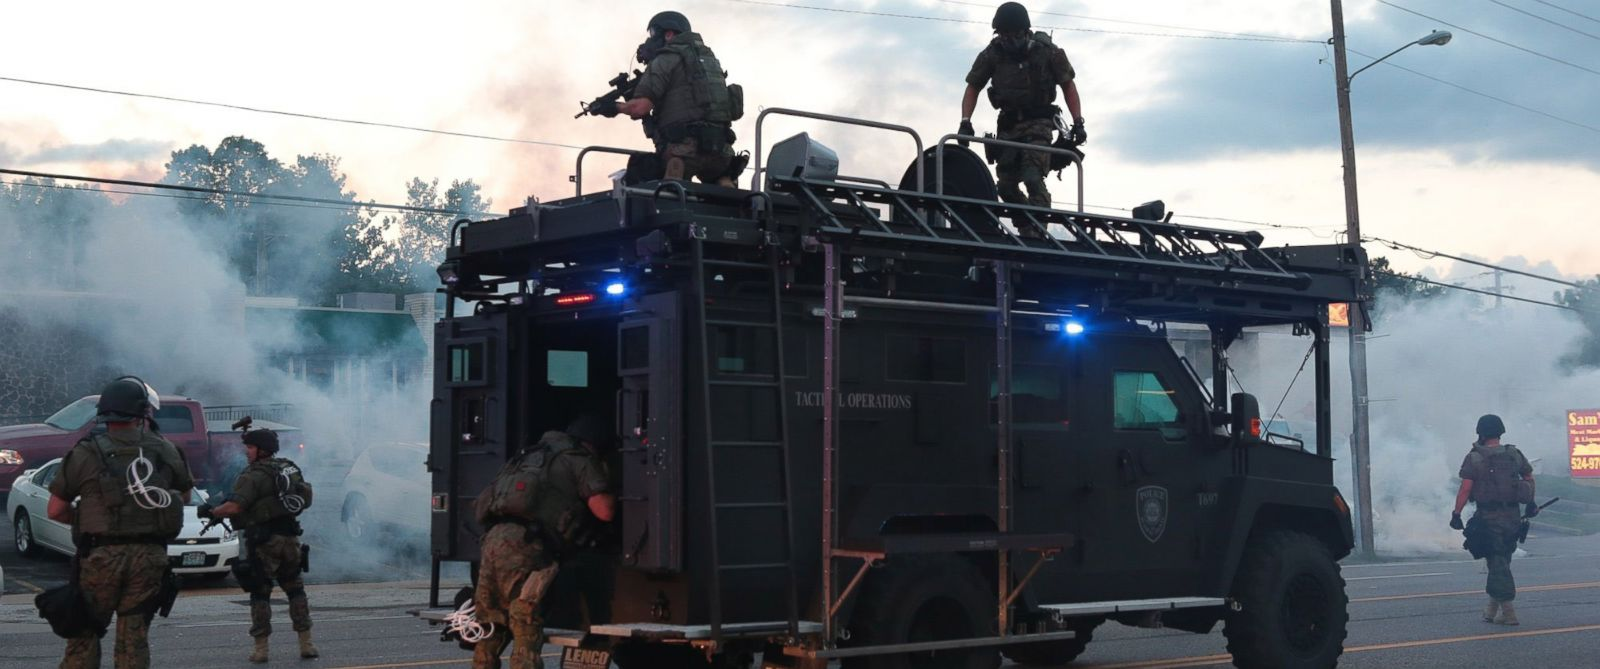 PHOTO: Tactical officers fire tear gas on Monday, Aug. 11, 2014, in Ferguson, Mo.